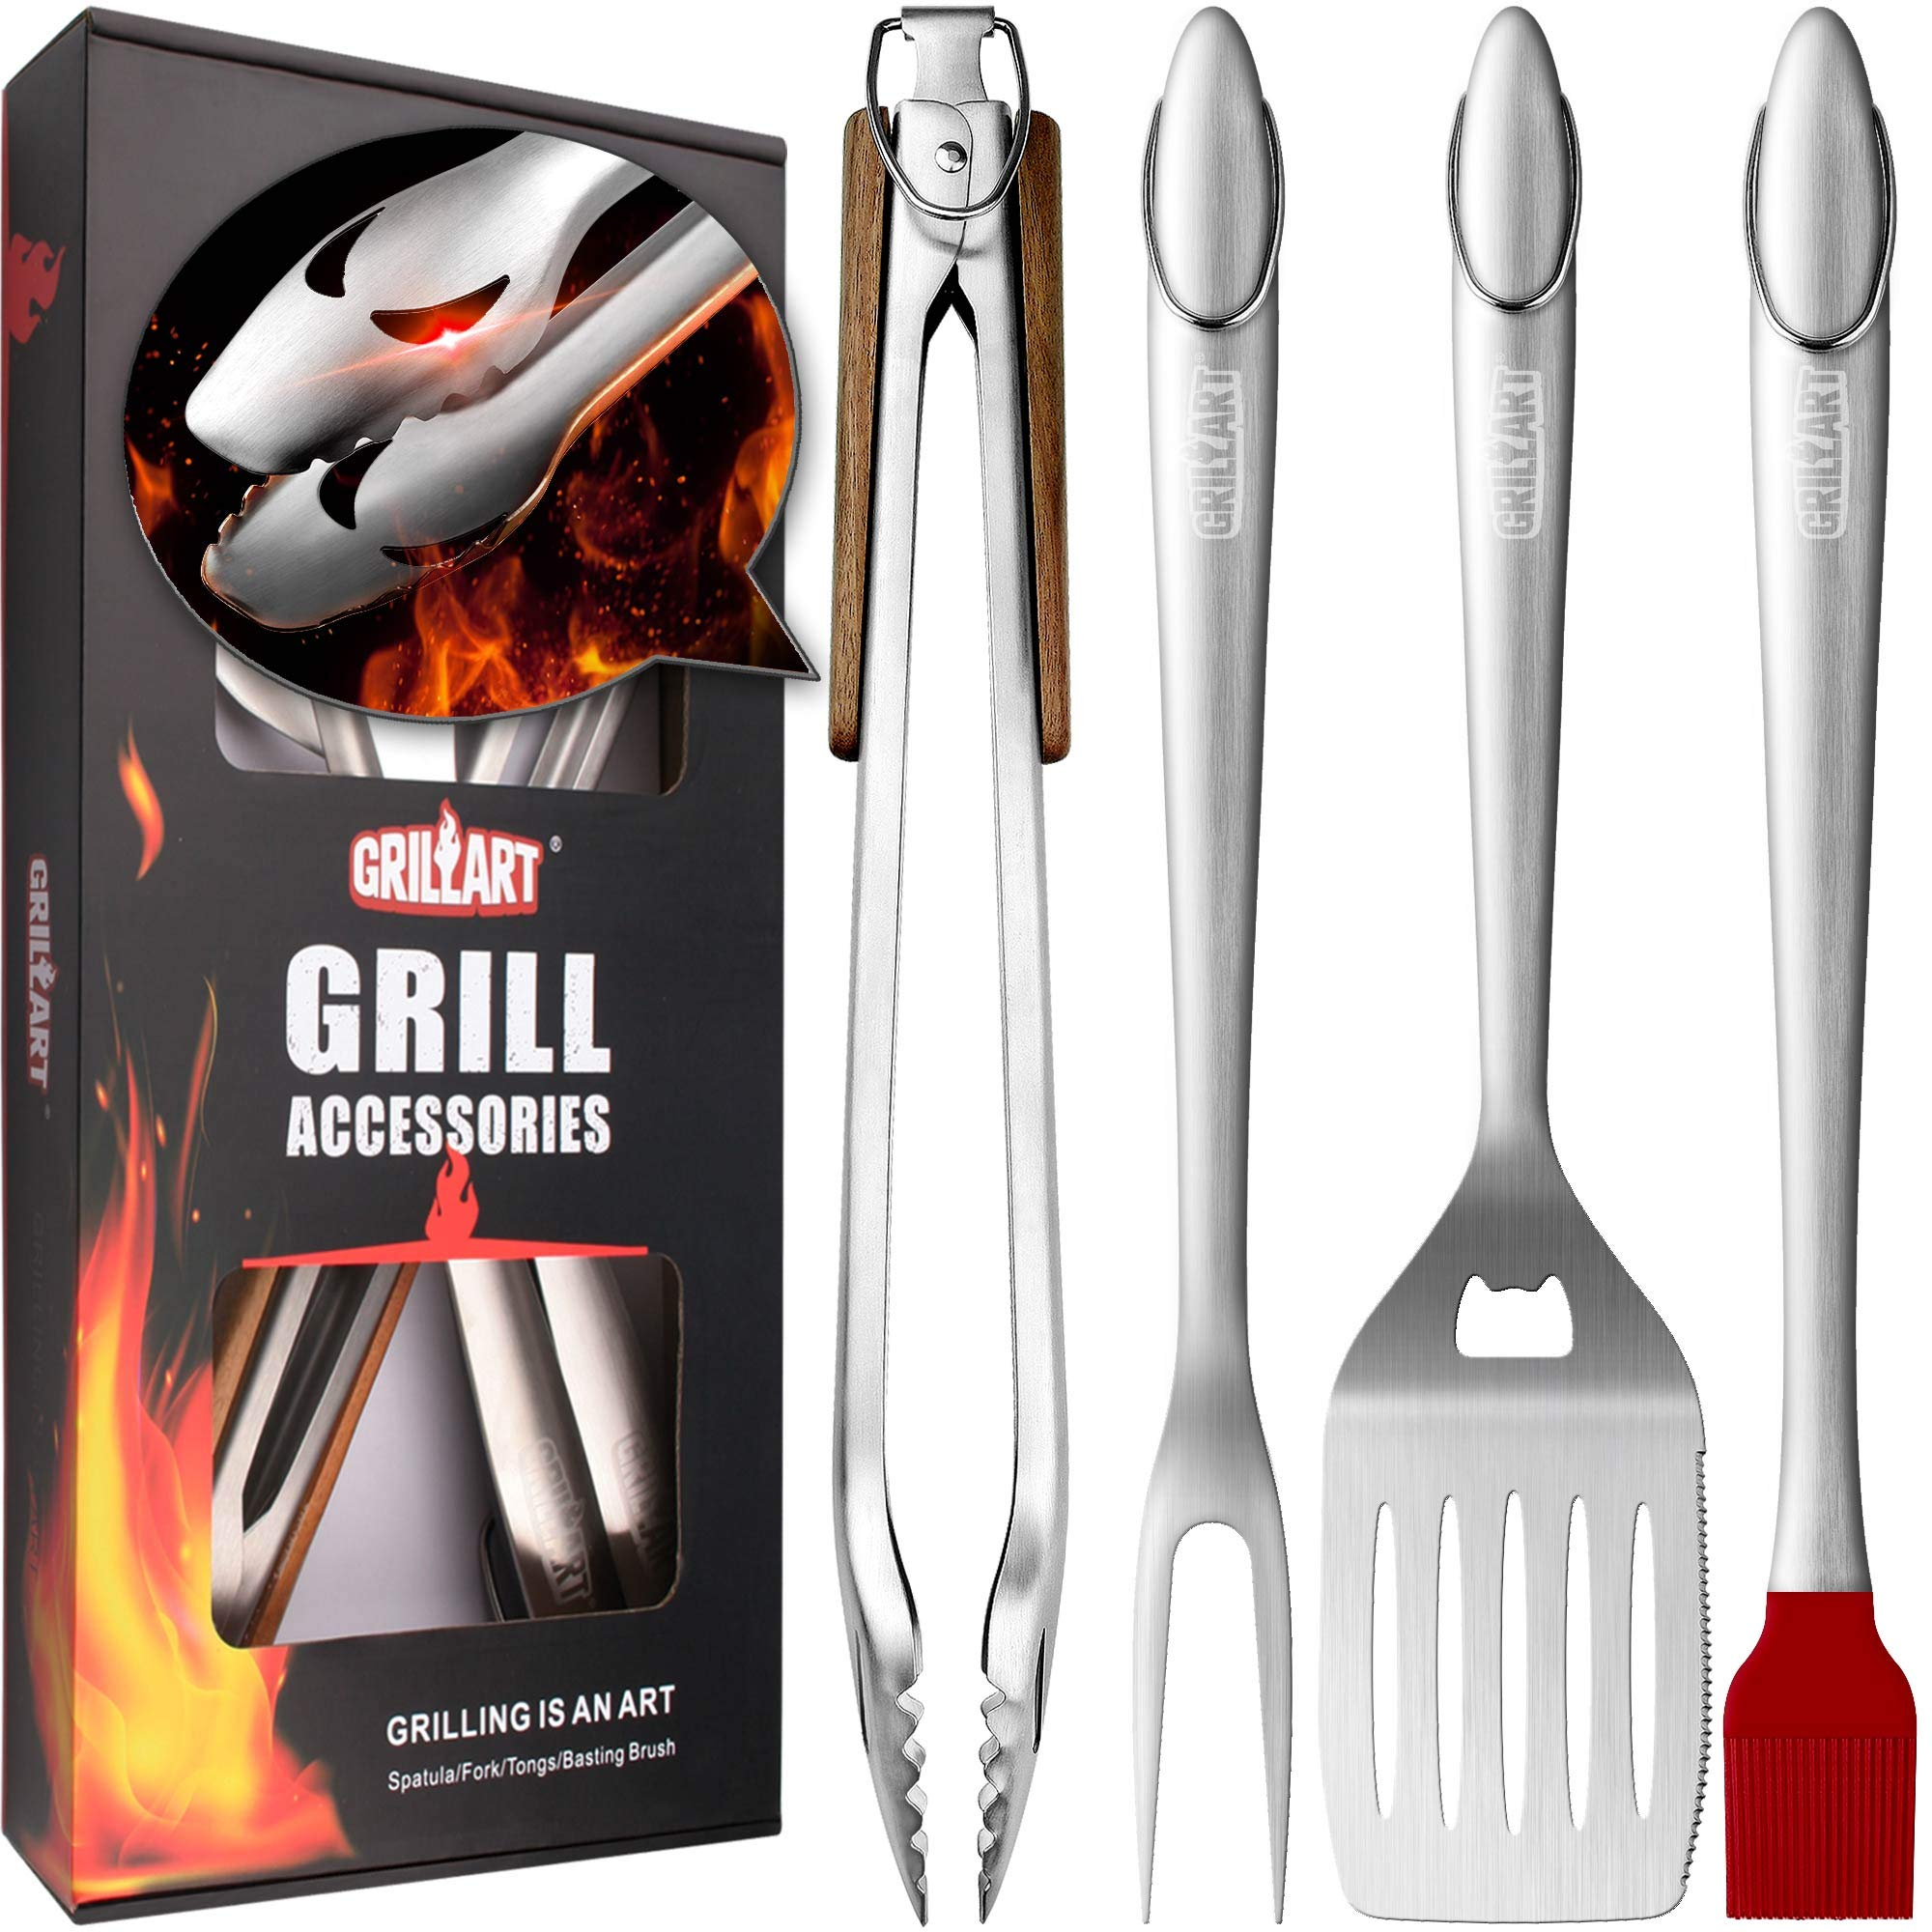 """GRILLART Heavy Duty Grill Tools Set. Snake-Eyes Design Extra Solid Grilling Utensils Kit - 18"""" Stainless Steel Locking Tongs, Spatula, Fork, Basting Brush. Best BBQ Accessories, Gift Box Package."""